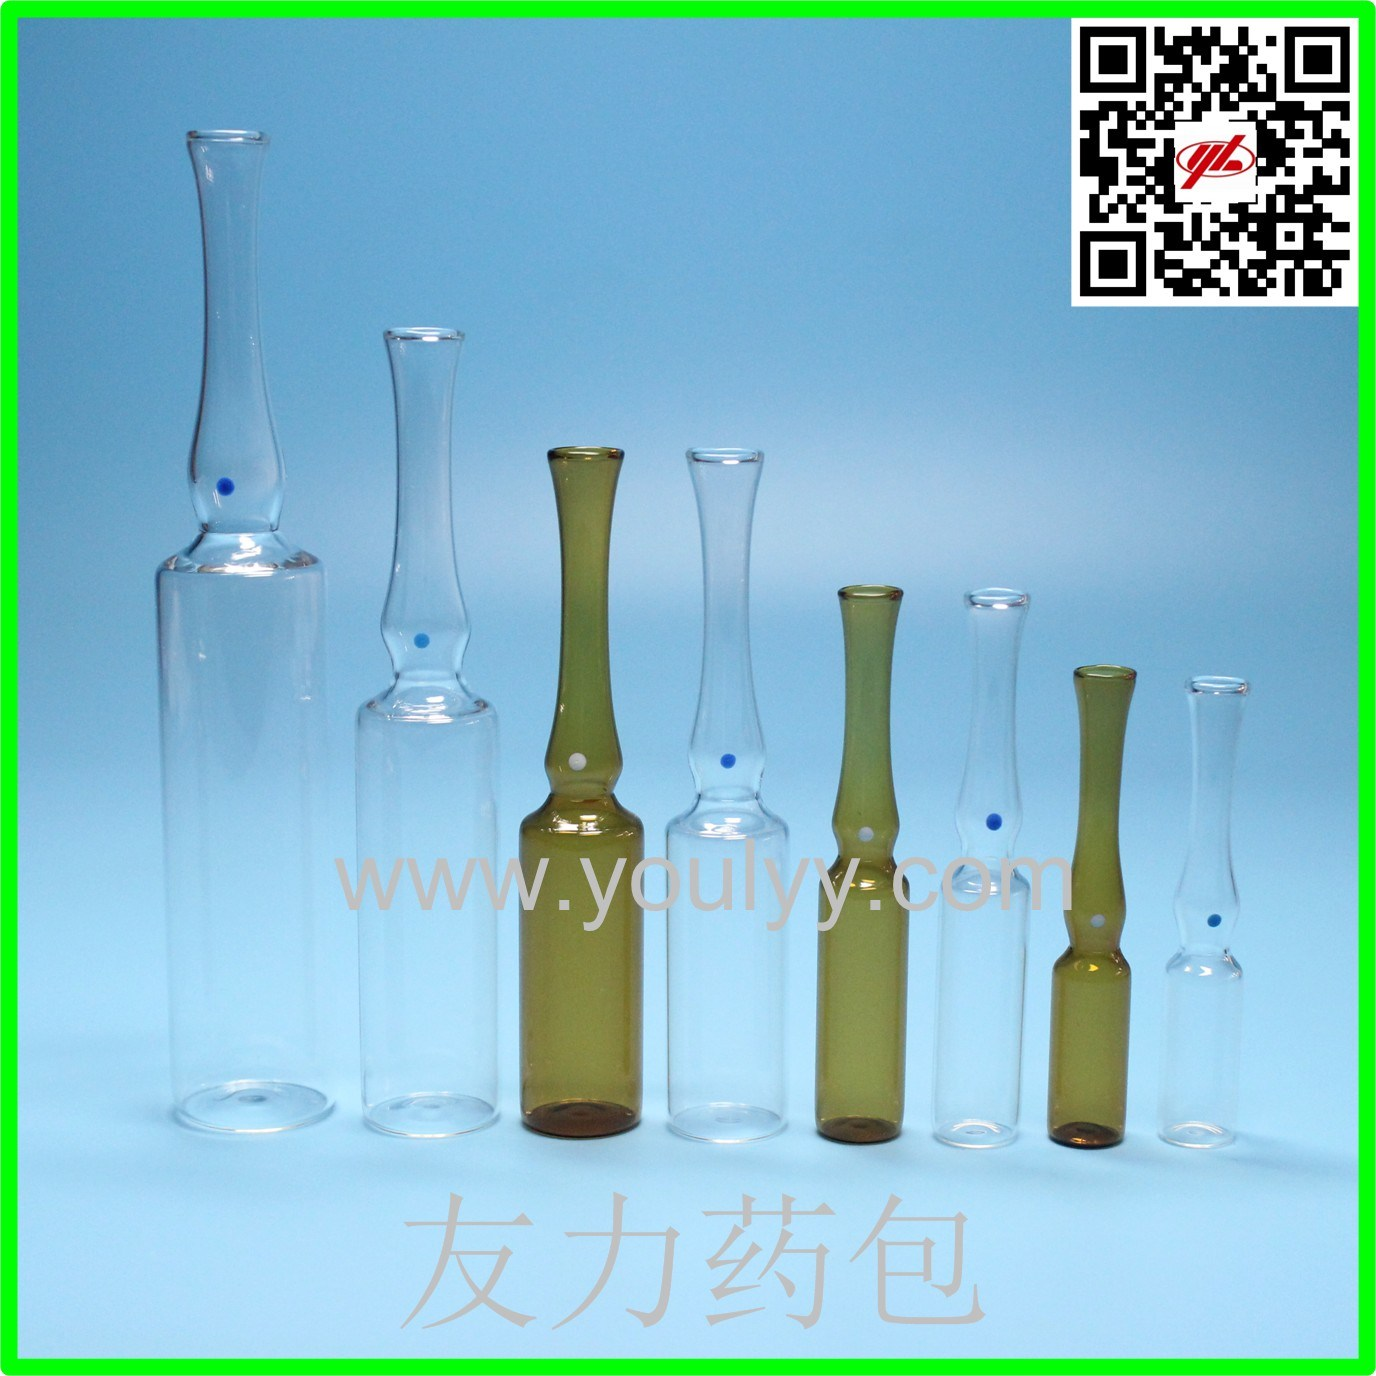 Neutral Glass Ampoule (1ml, 2ml, 3ml, 5ml, 10ml, 20ml.)